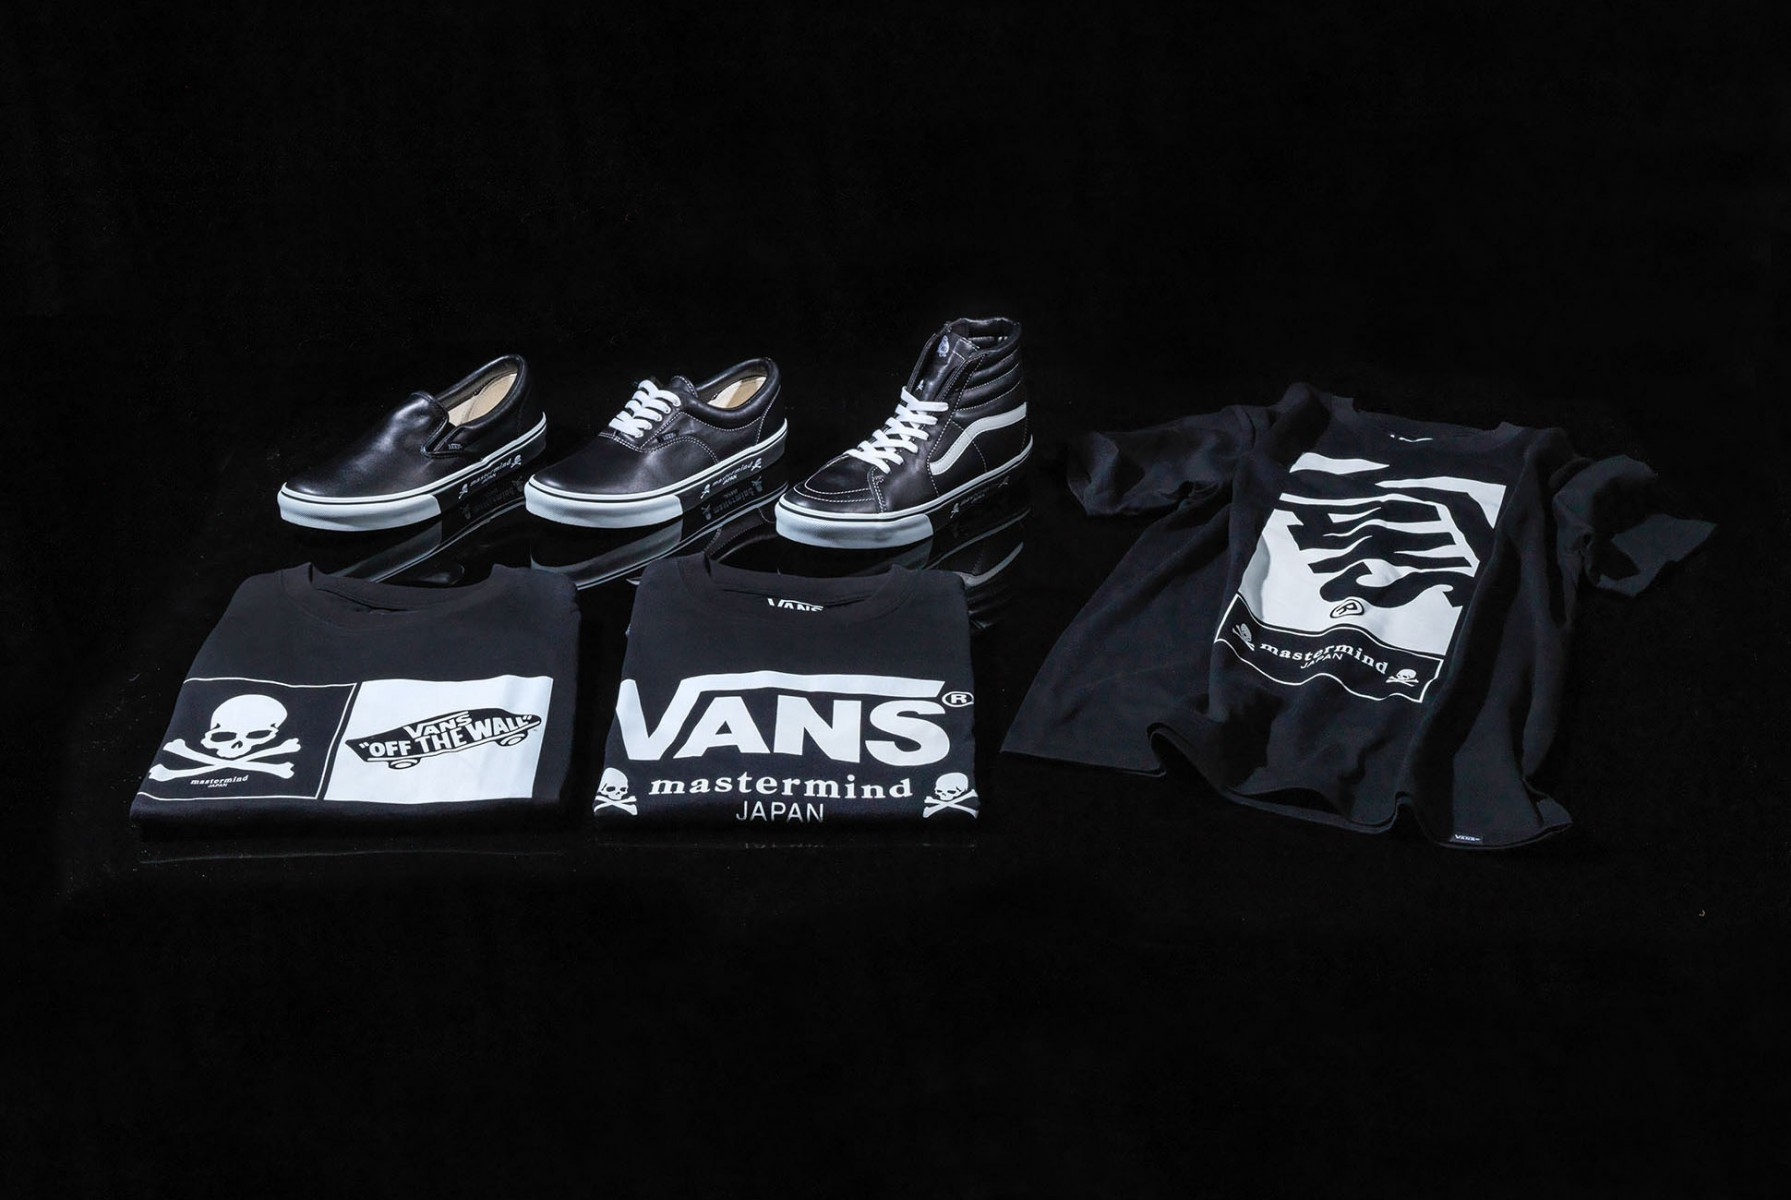 aca5ead30f0e5d mastermind JAPAN x Vans Capsule Collection 2